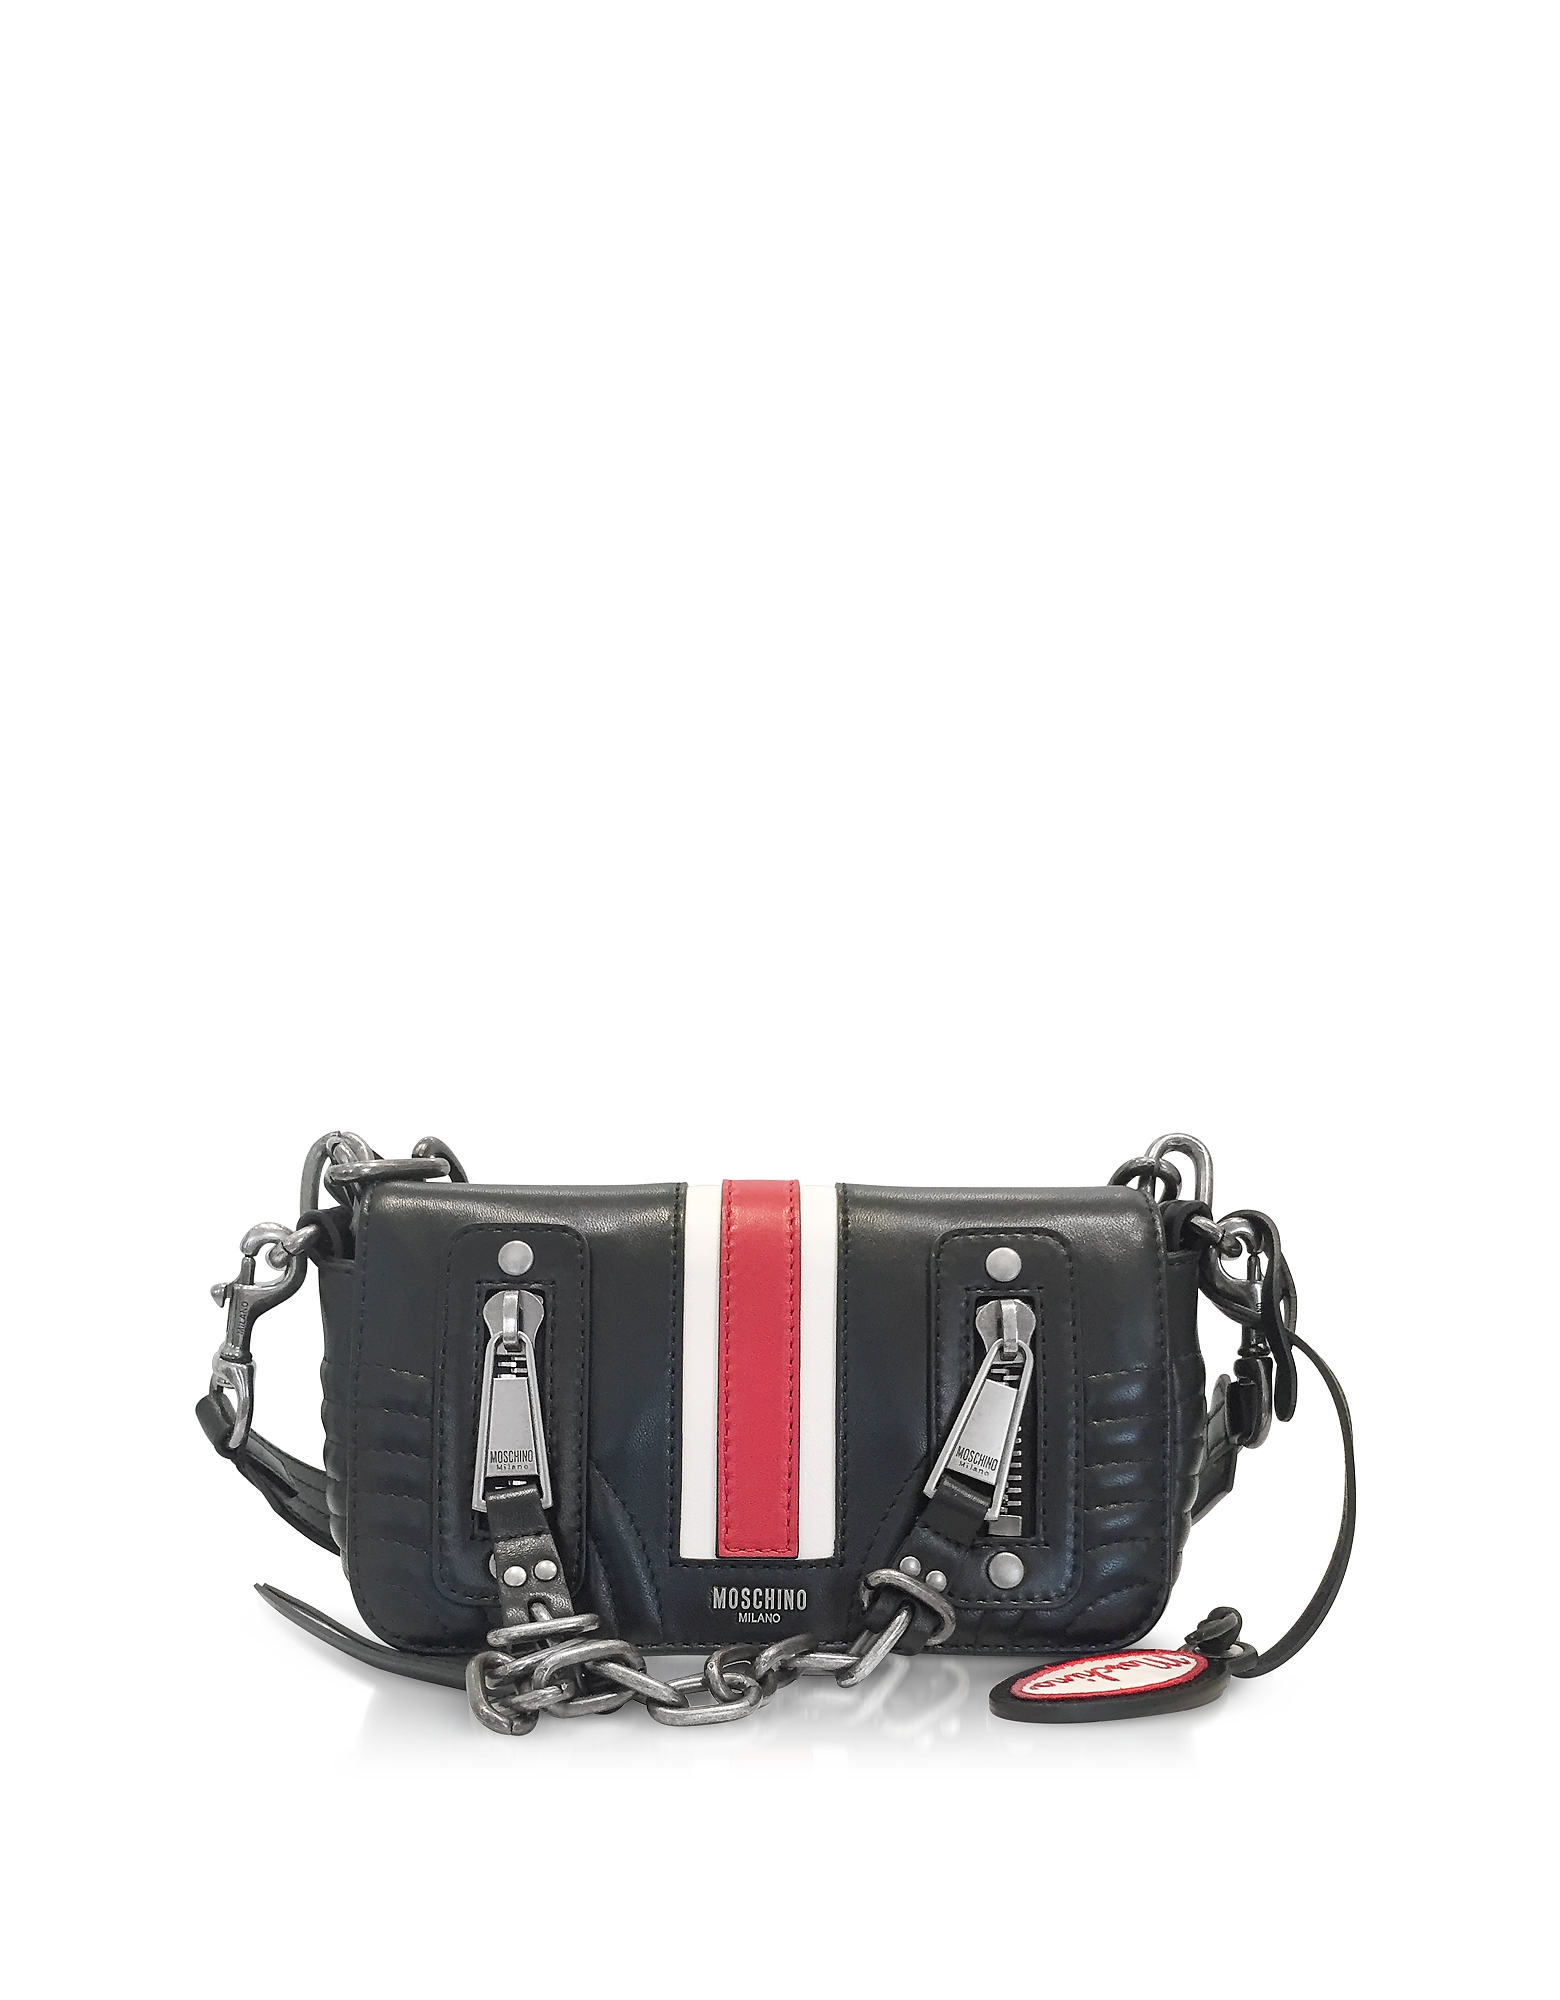 Moschino Black Quilted Leather Small Shoulder Bag w/Red Band